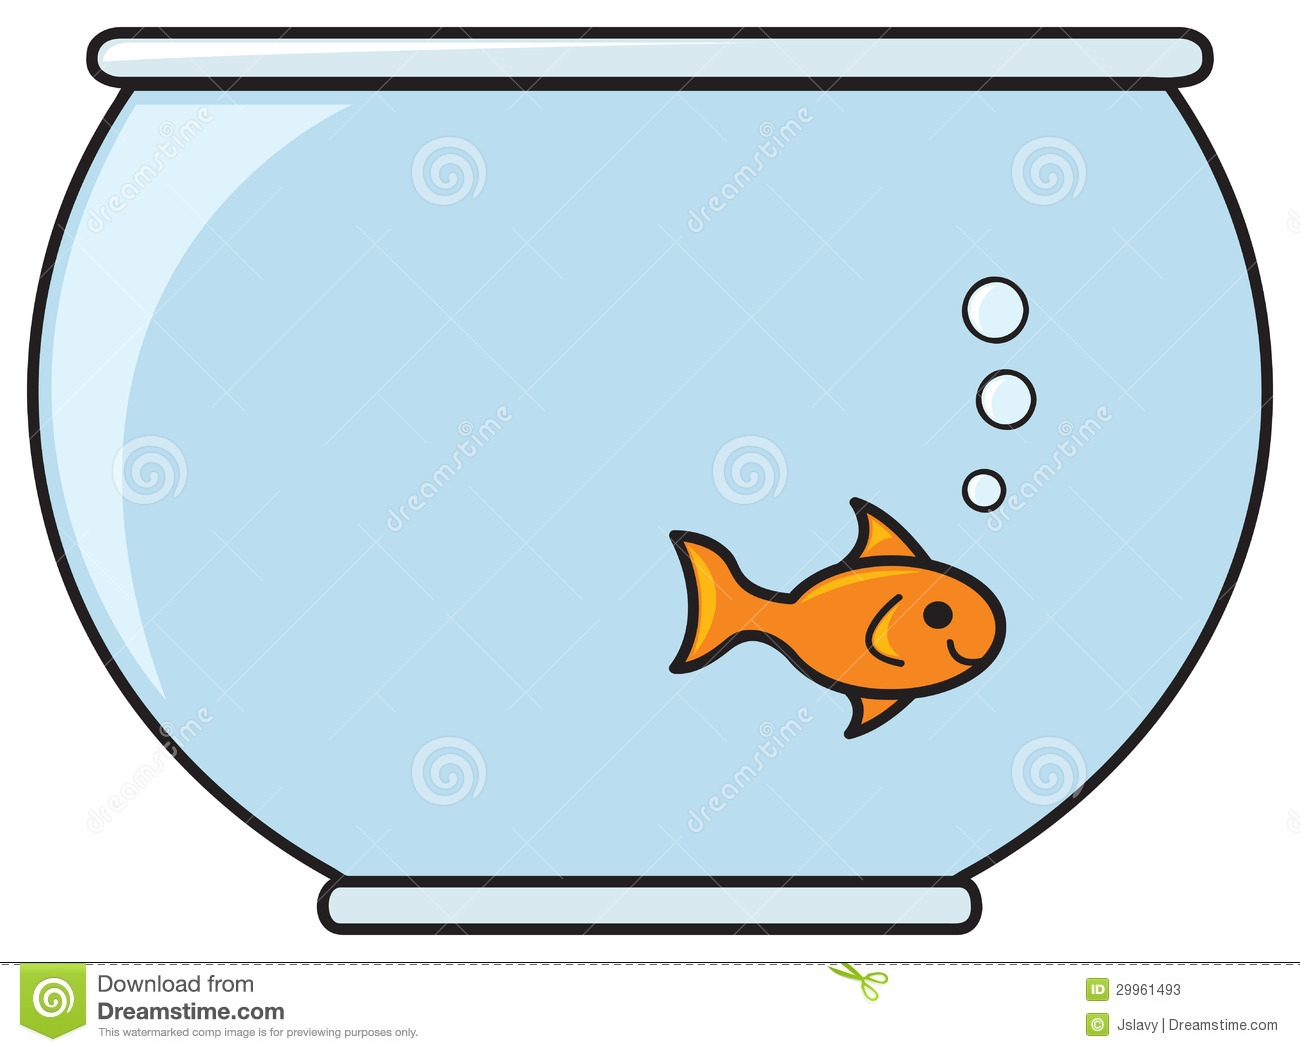 Fishbowl clipart fish swimming. Free download best on